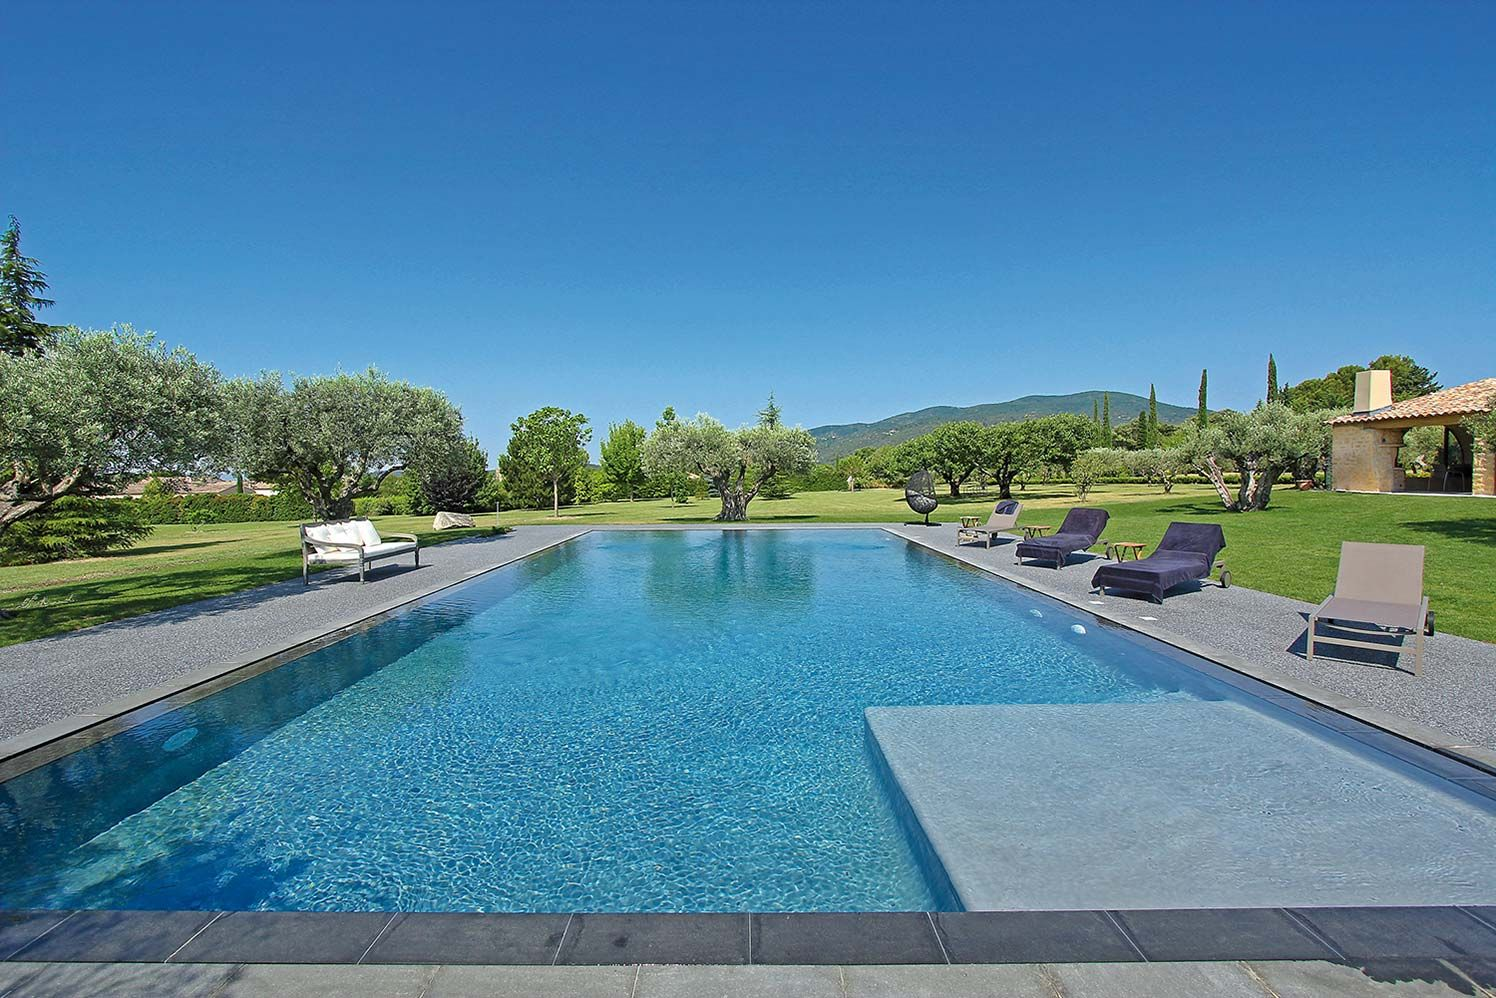 La piscine petite note contemporaine provence and for Piscine contemporaine